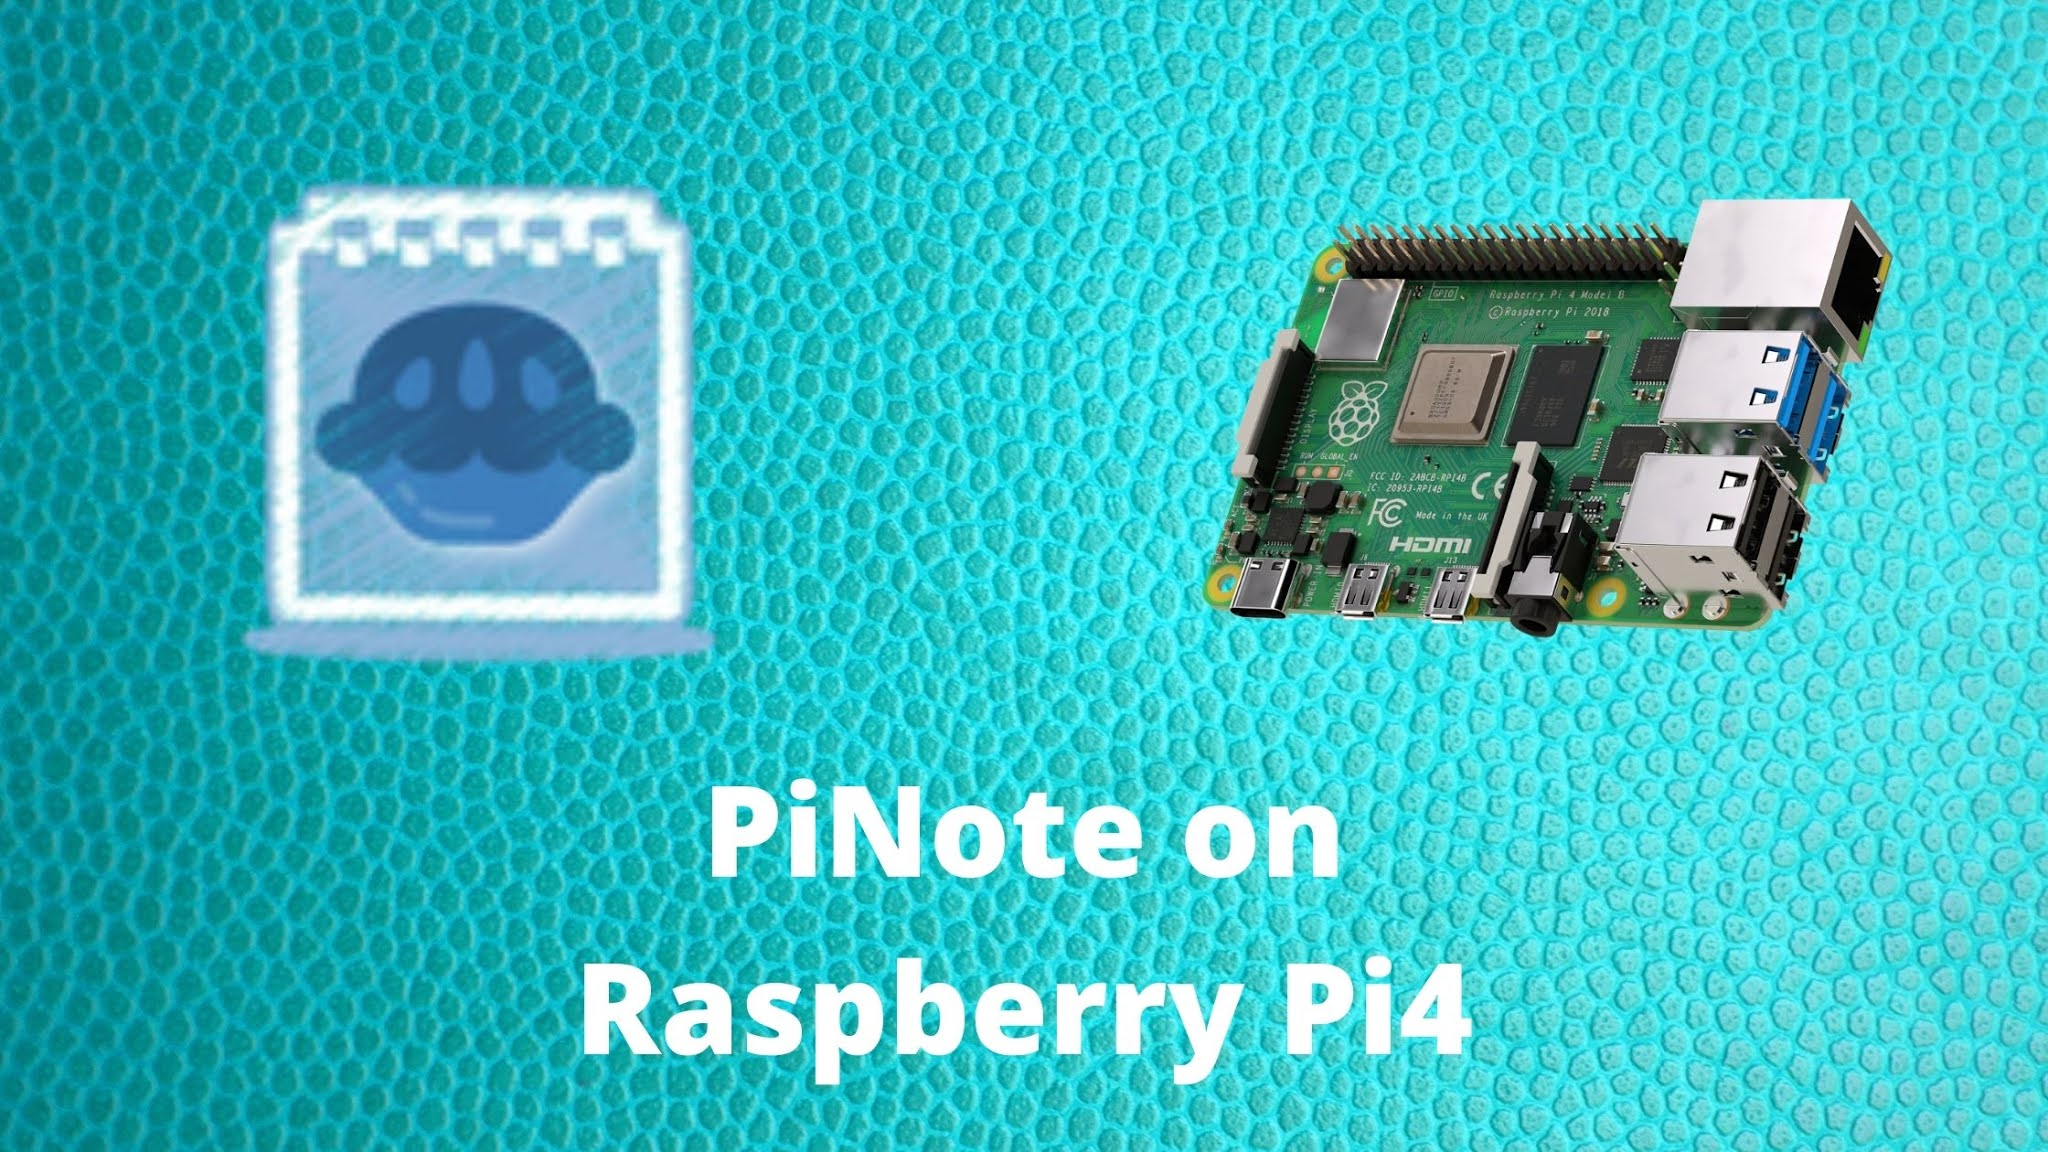 PiNote - a Visual Studio Code alternative for Raspberry Pi 4